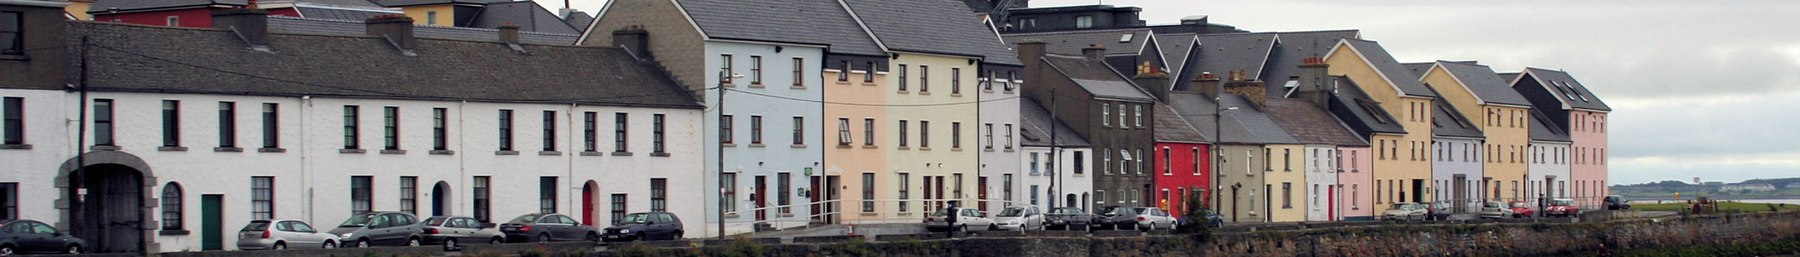 Galway banner Row of houses.jpg